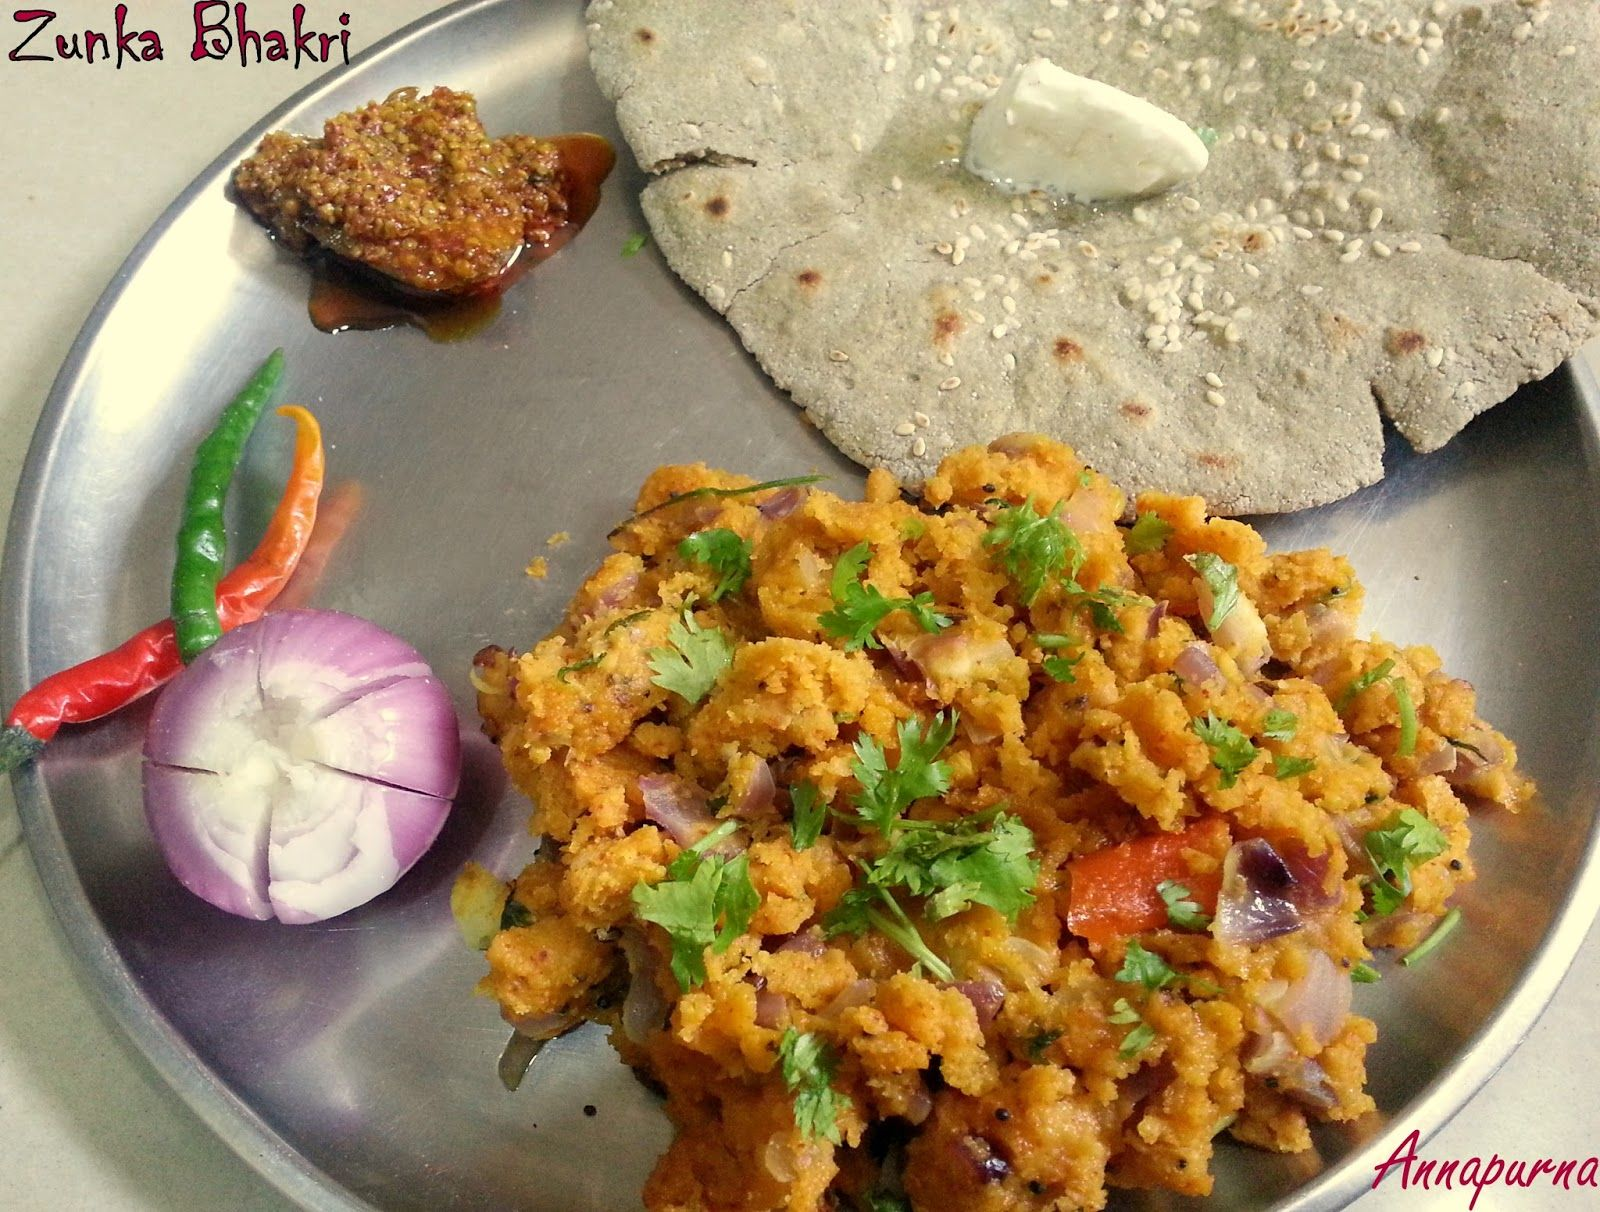 Zunka authentic maharashtrian recipe flat bread dishes and recipes zunka is a traditional maharashtrian dish which is usually paired with and tastes best with a thick flat bread made of bajra known as bh forumfinder Image collections